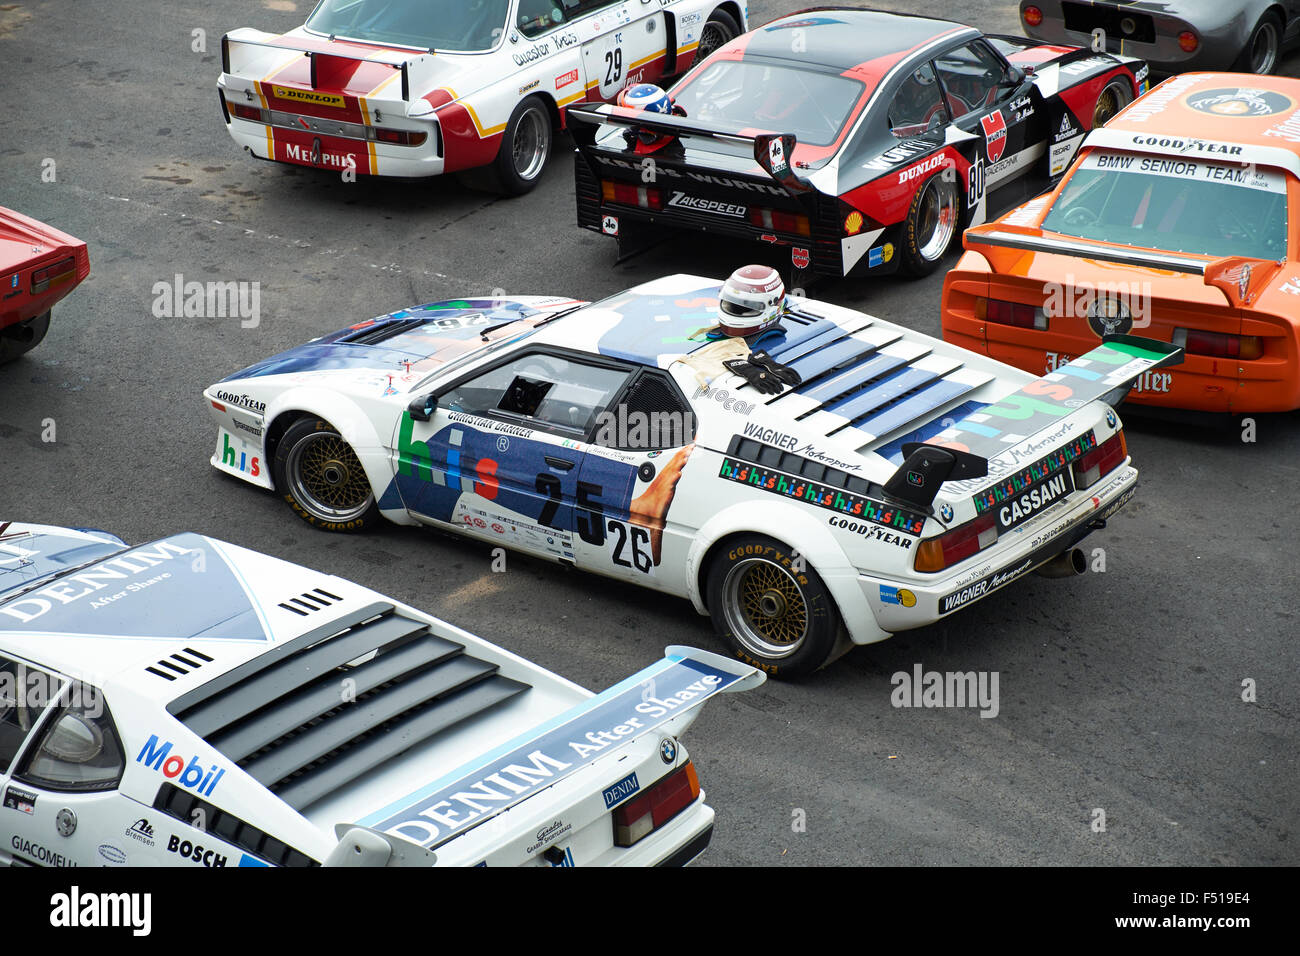 bmw m1 procar 1979 german racing championship stock photo royalty free image 89154524 alamy. Black Bedroom Furniture Sets. Home Design Ideas